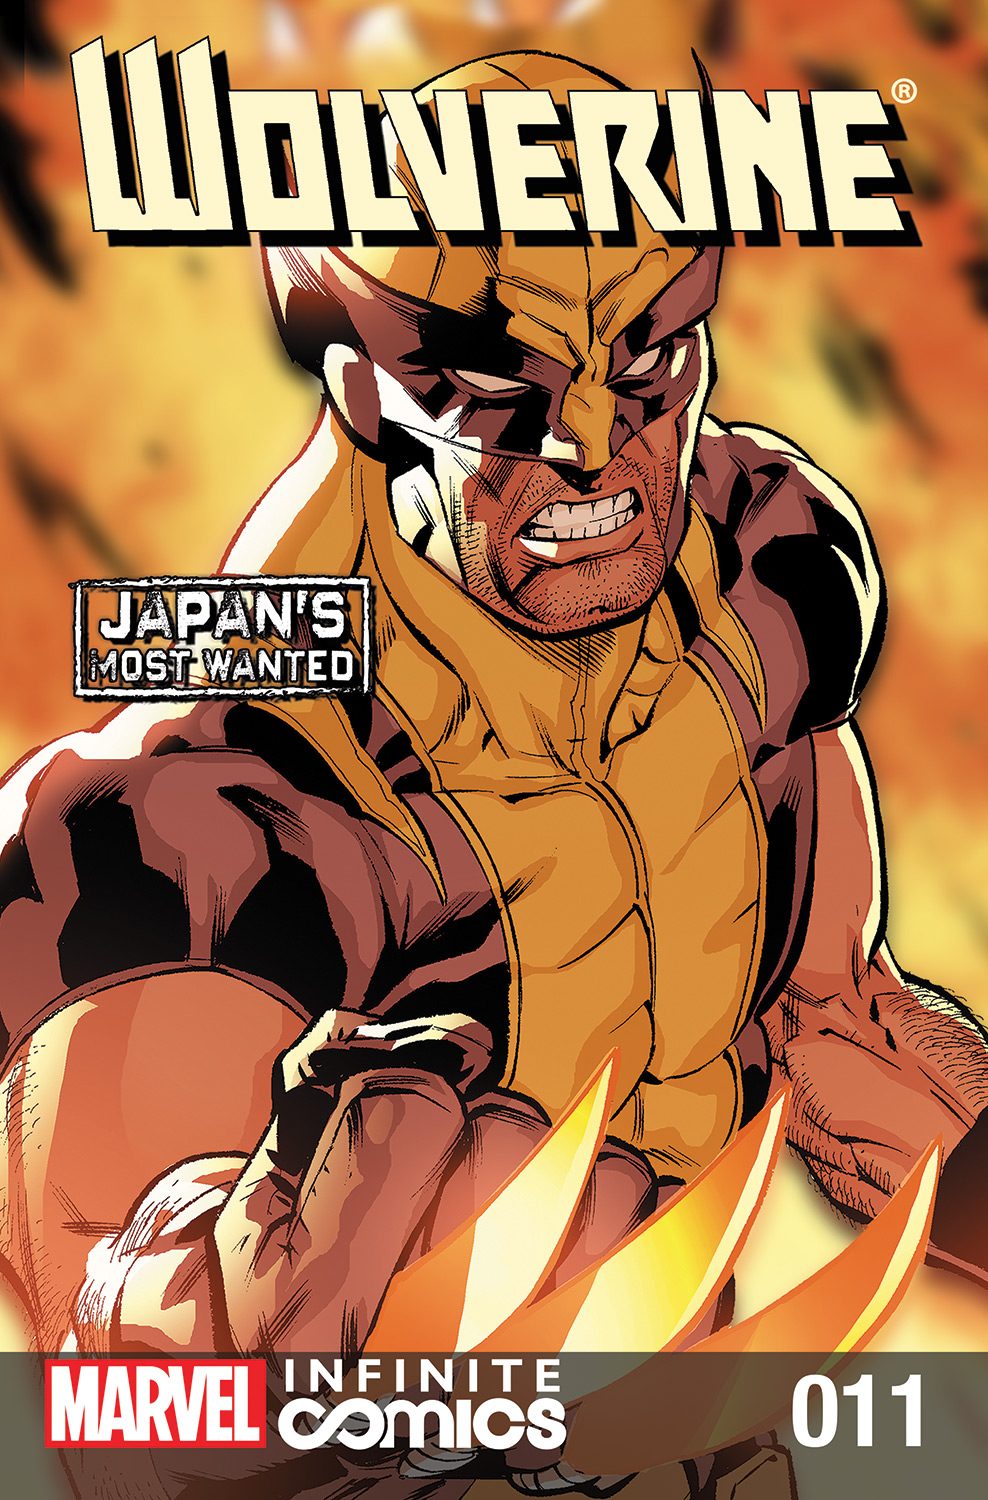 Wolverine: Japan's Most Wanted Infinite Comic (2013) #11